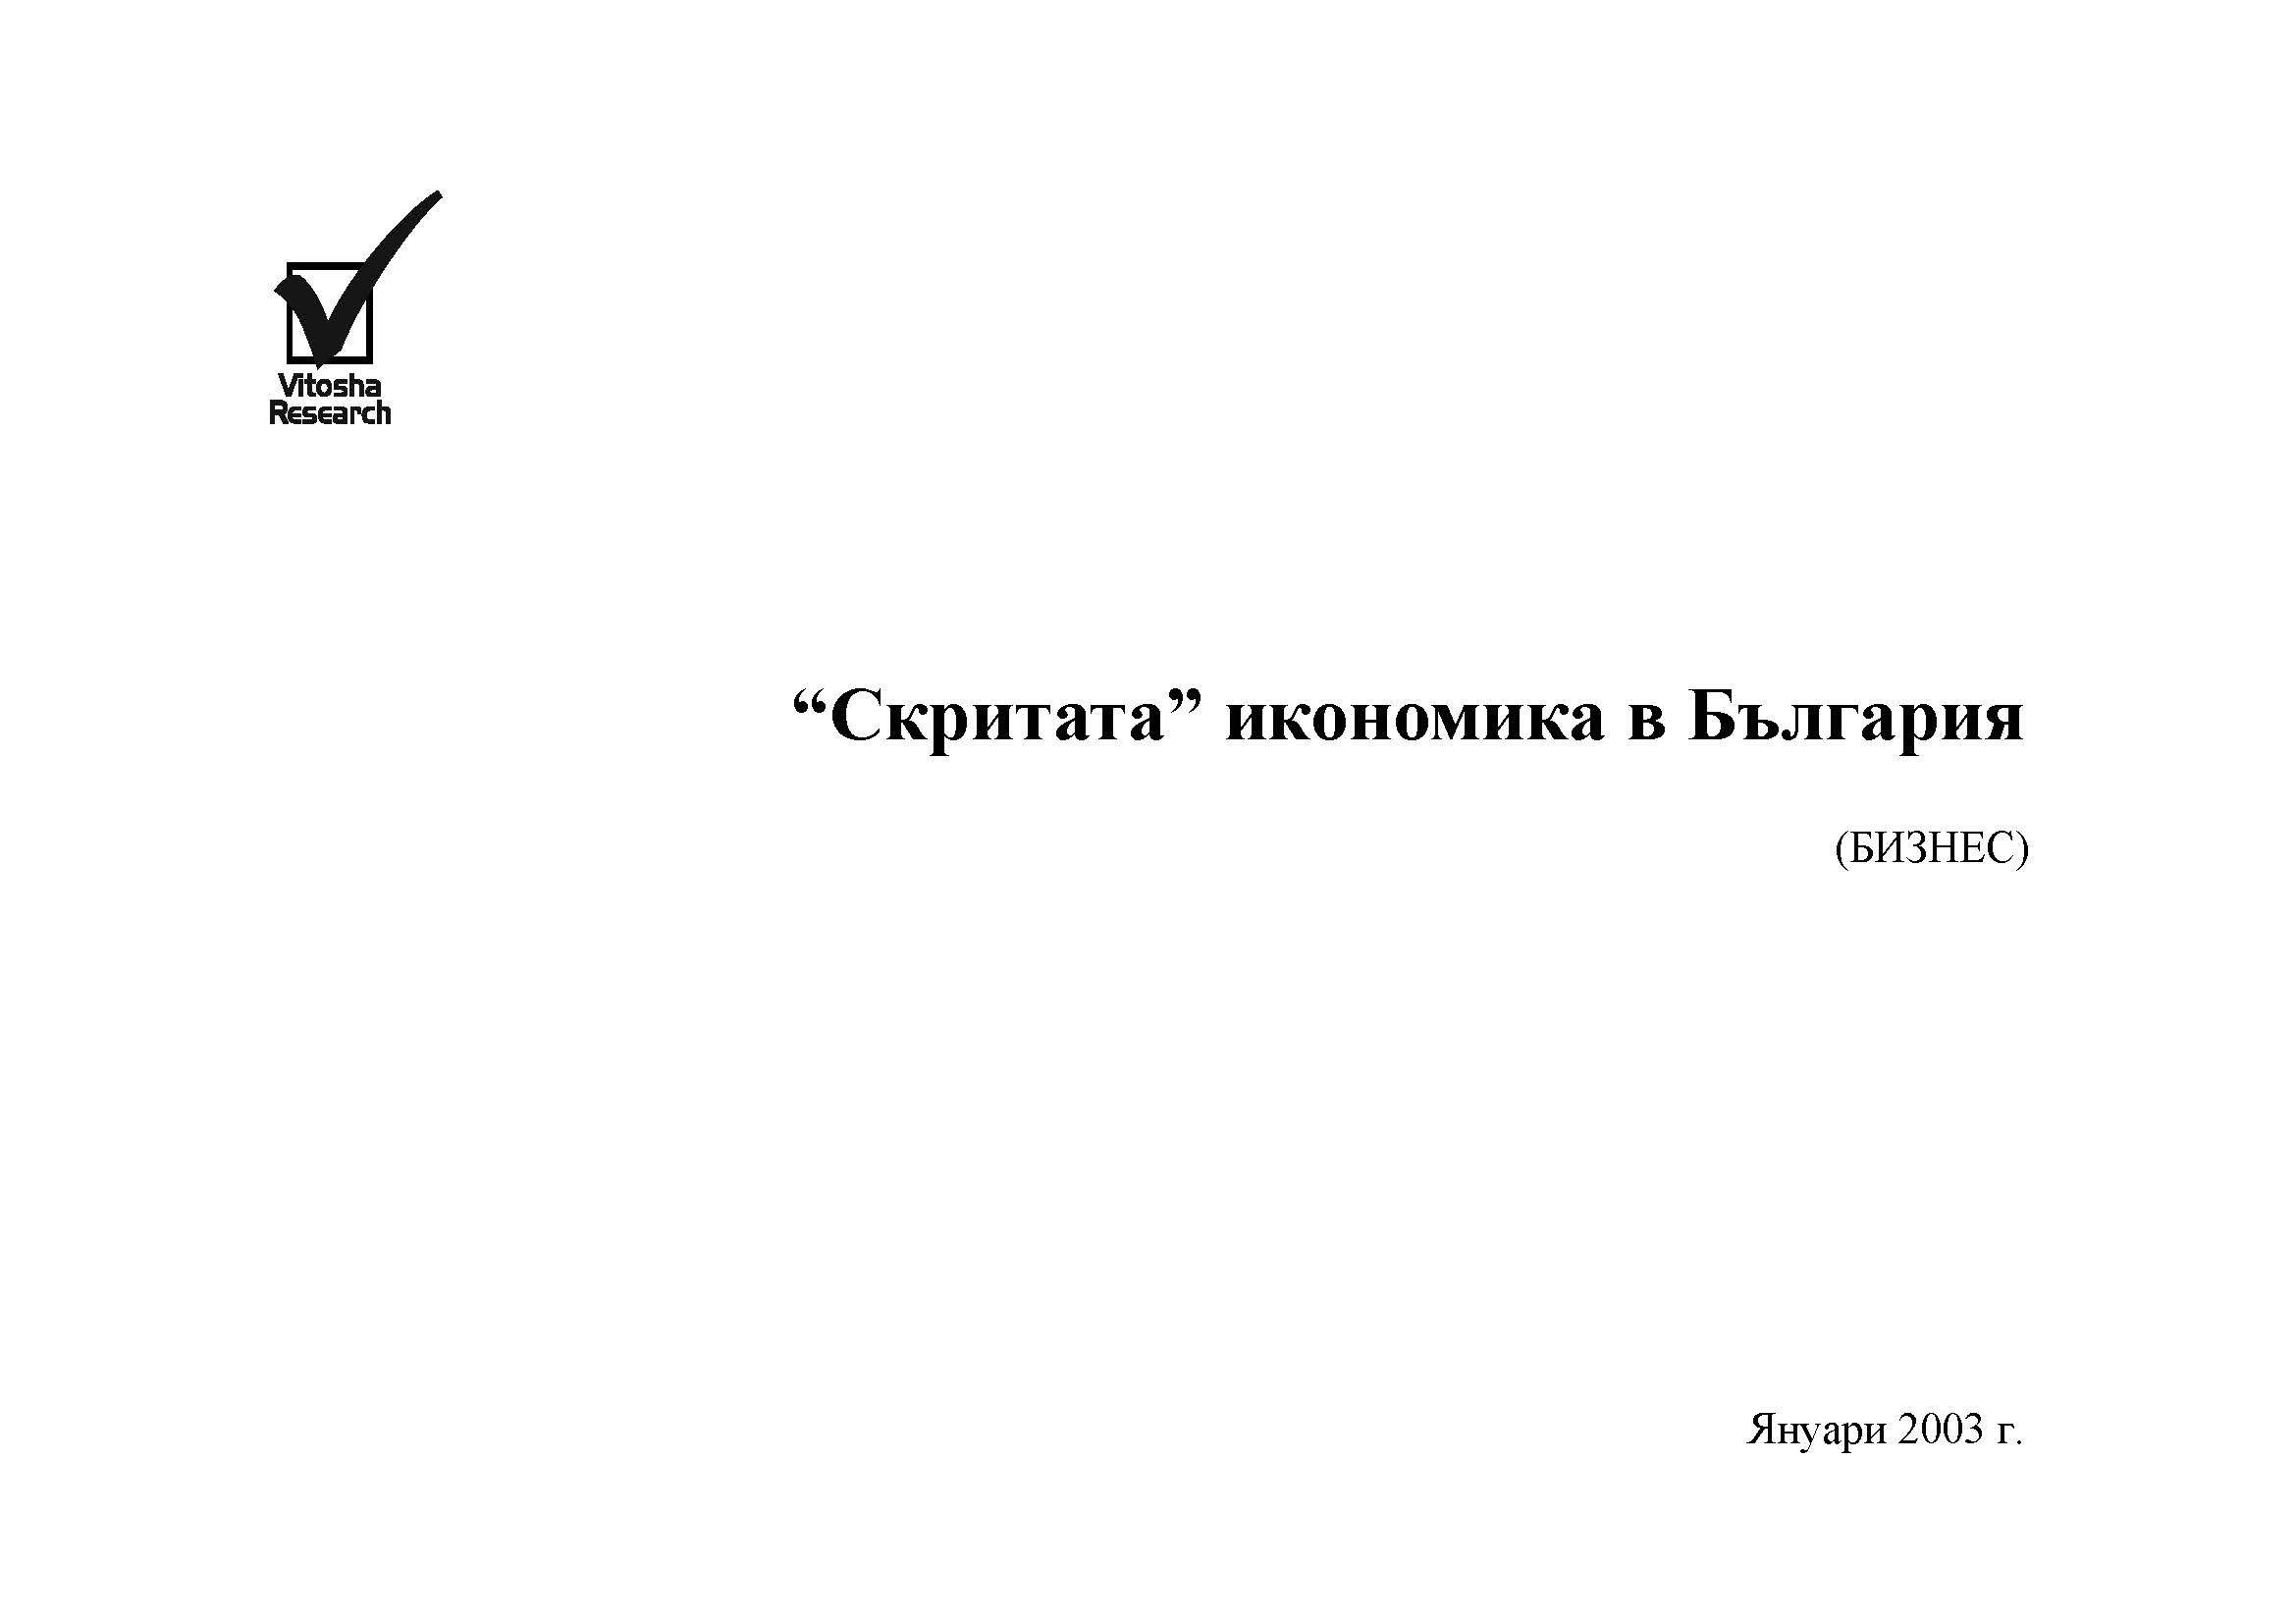 The Hidden Economy in Bulgaria (Business Sector Survey), December 2002 Cover Image